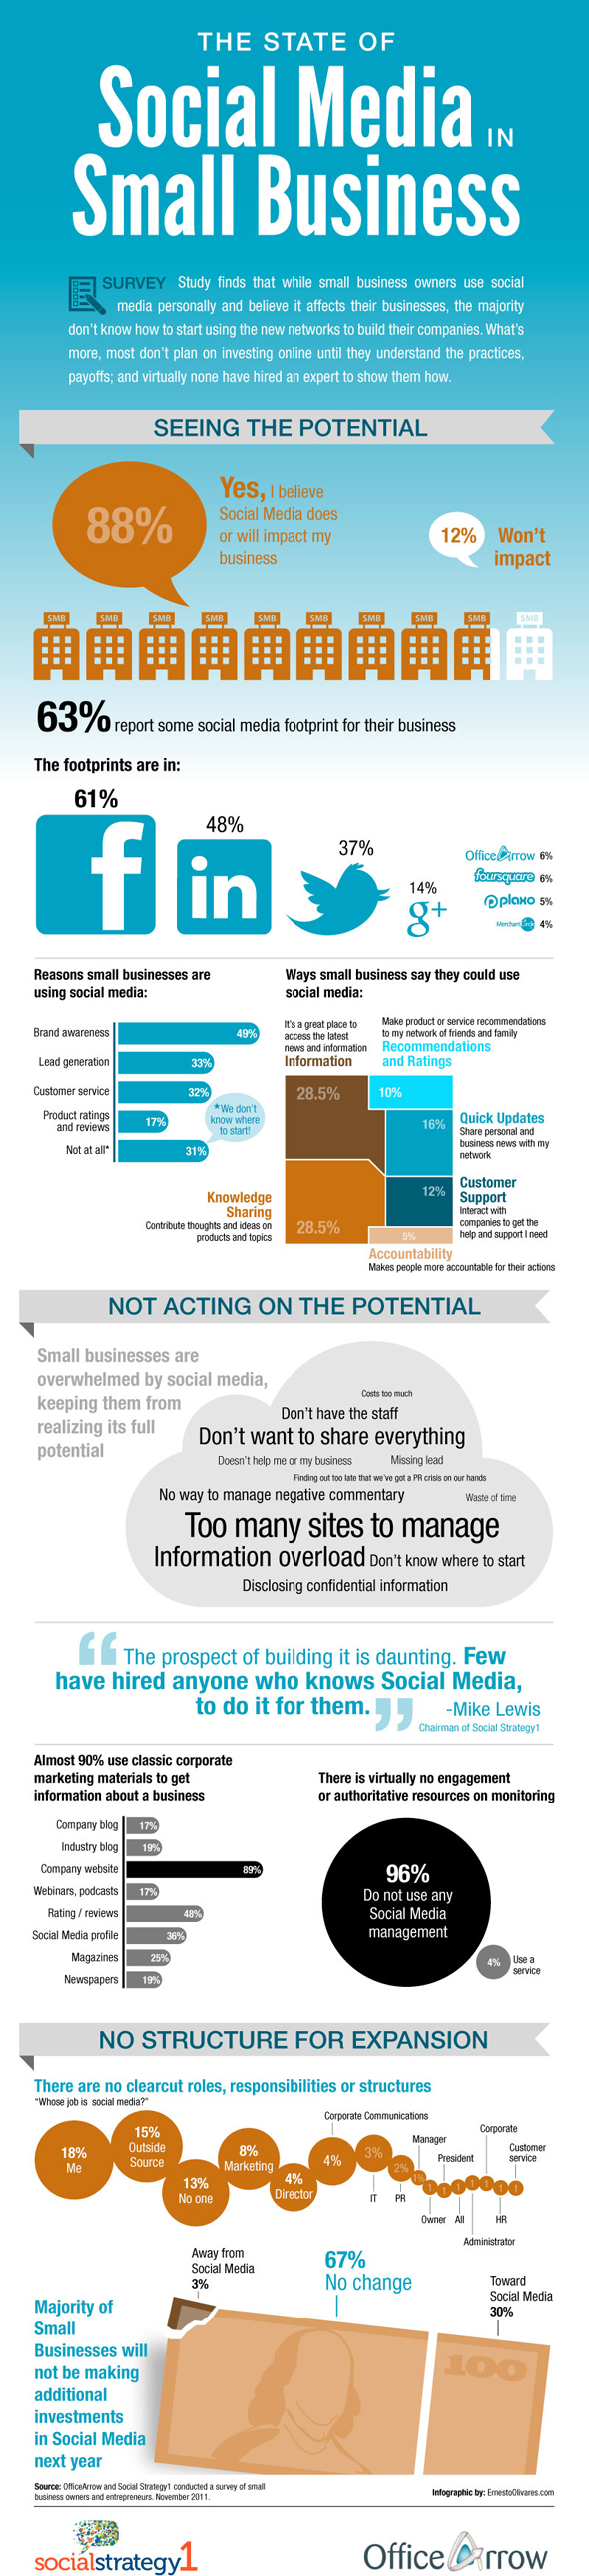 State Of Social Media In Small Business-infographic